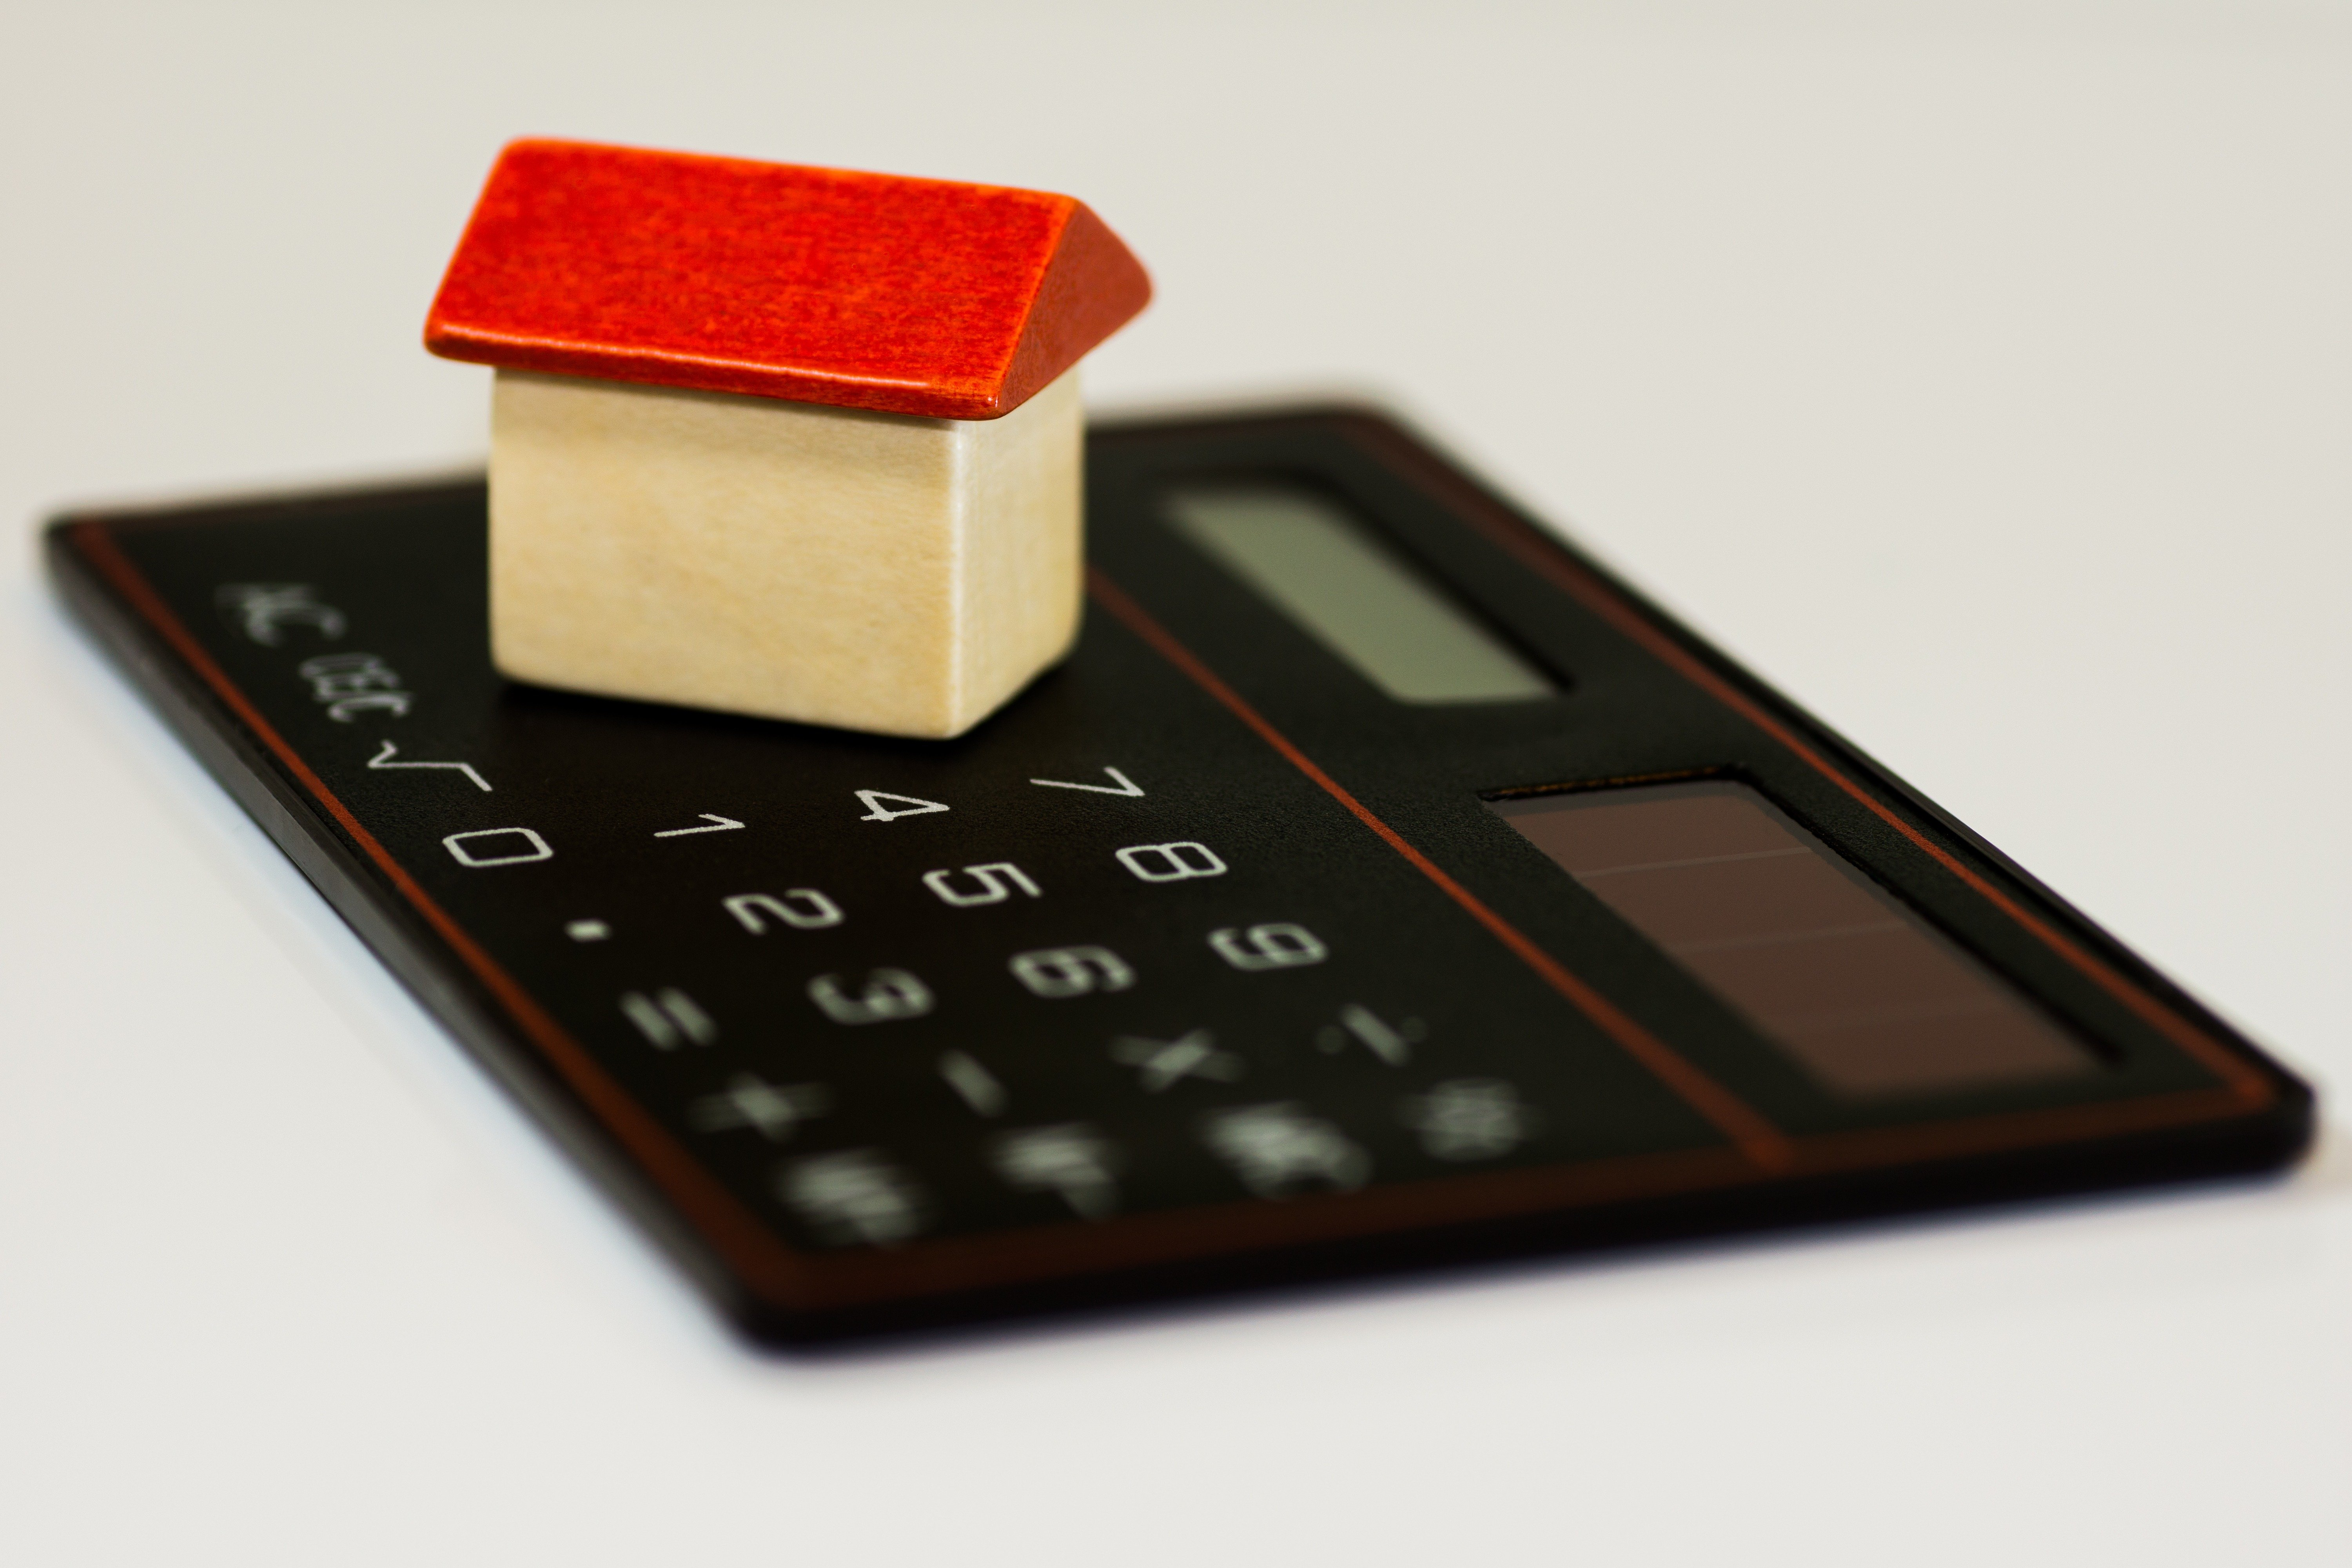 Support for tenants who may be struggling to pay rent due to Covid-19